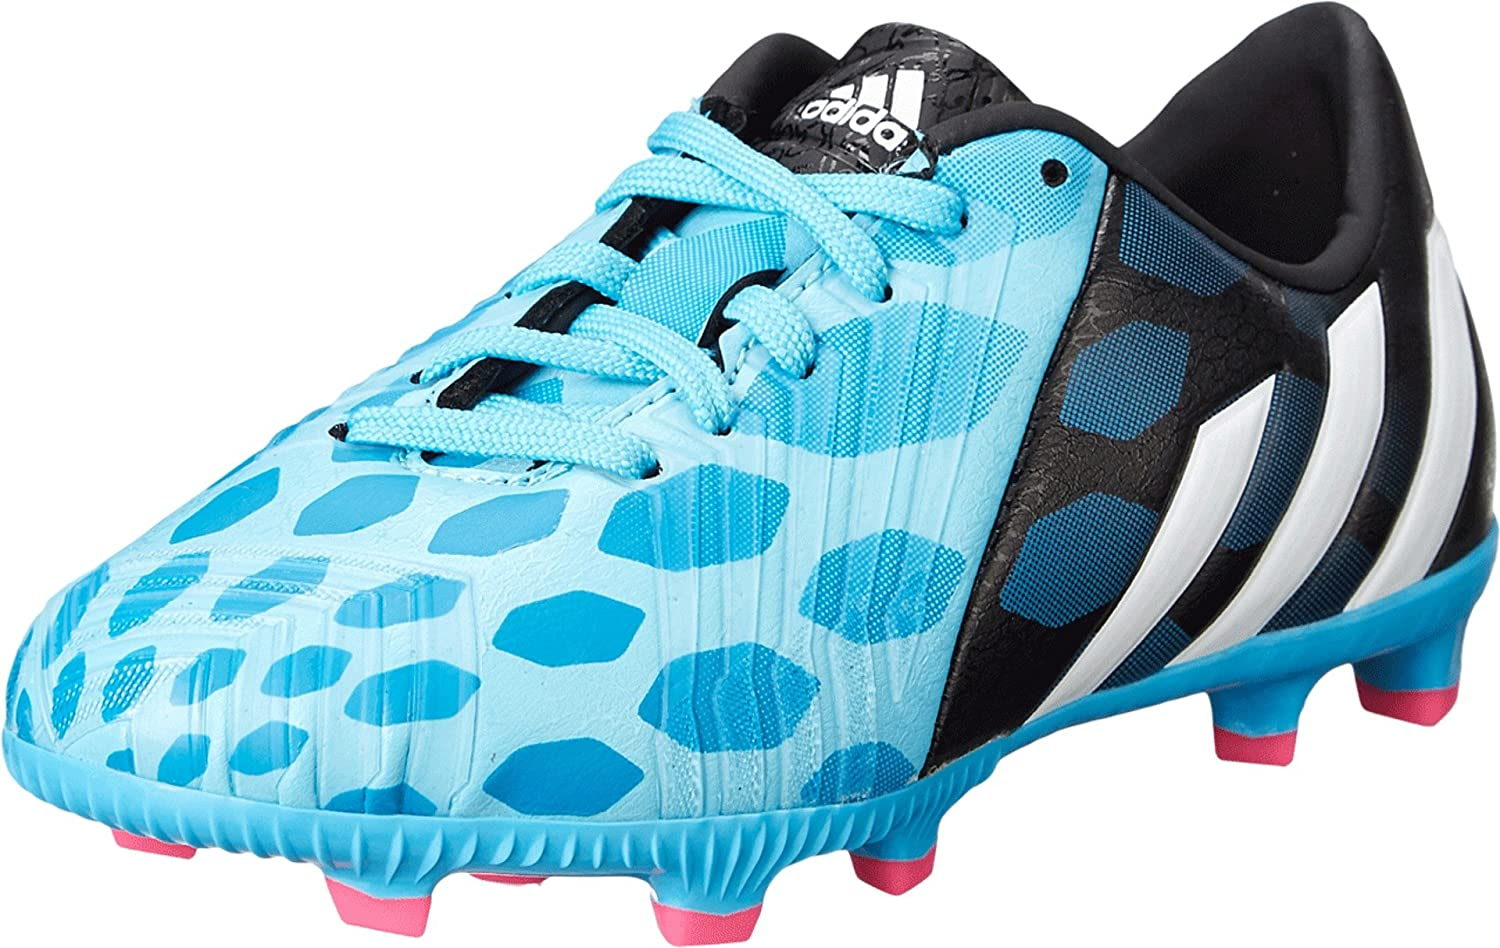 Corredor Descolorar Brote  Amazon.com | adidas Predator Absolado Instinct FG J Soccer Cleats (Boy's),  Solar Blue/White 5.5 | Soccer